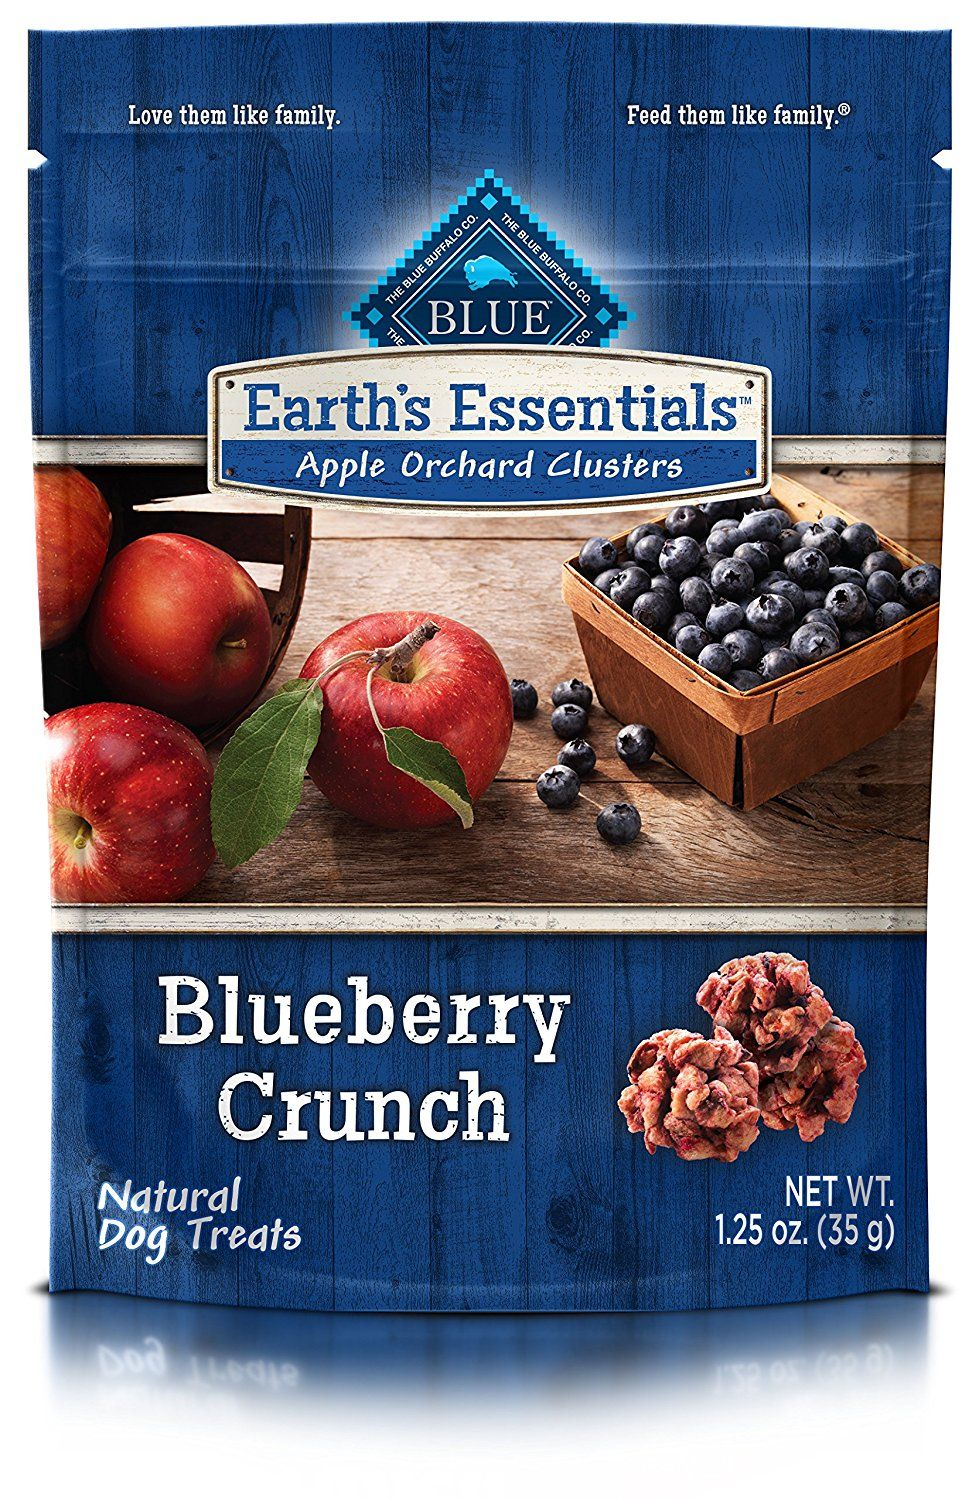 Blue earths essentials 801562 apple orchard clusters